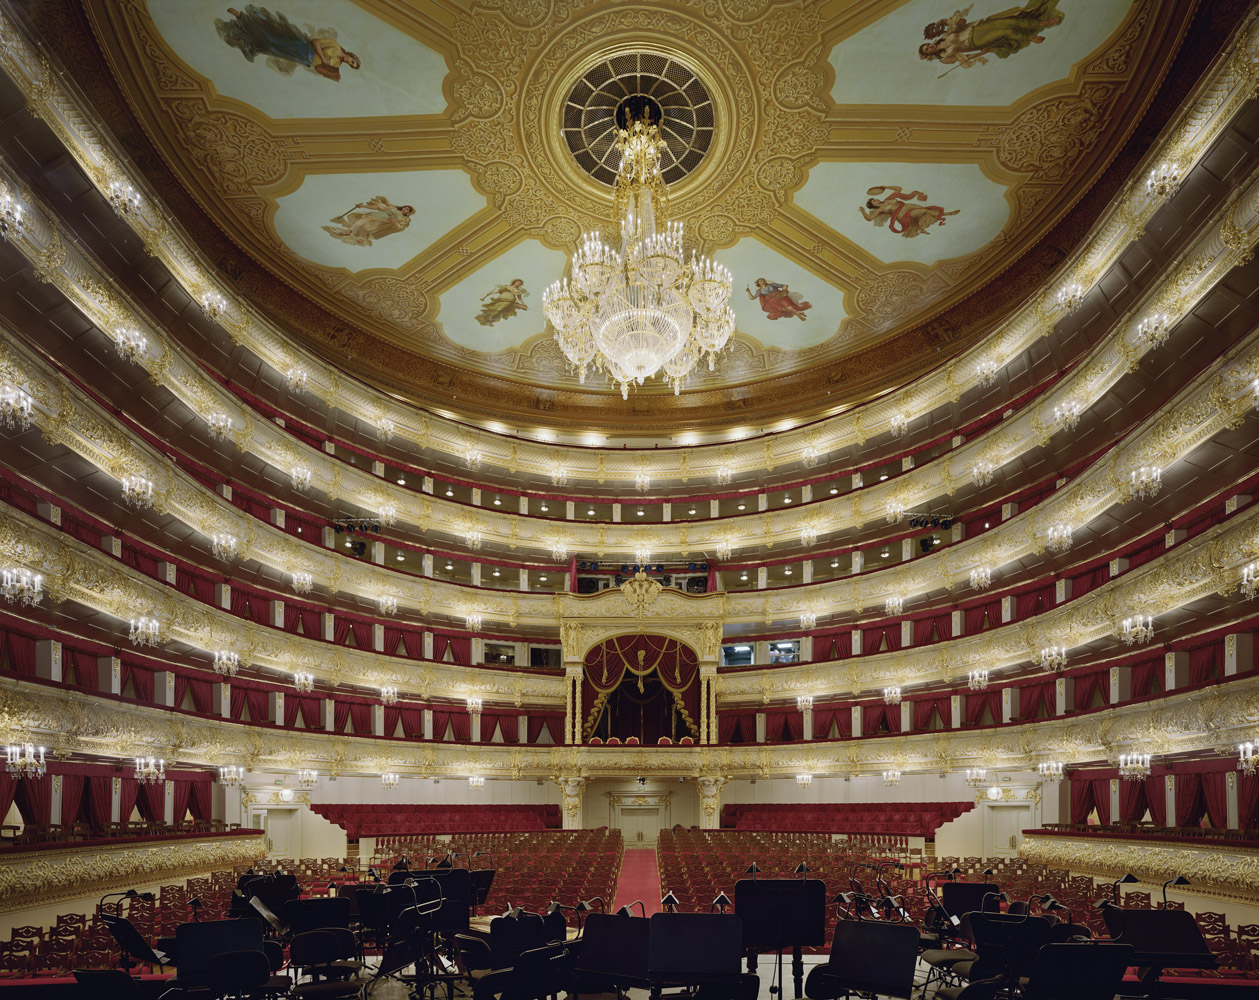 Bolshoi Theater, Moscow, Russia, 2011, by David Leventi. Fujicolor Crystal Archive print of the theater interior, mounted to Dibond.